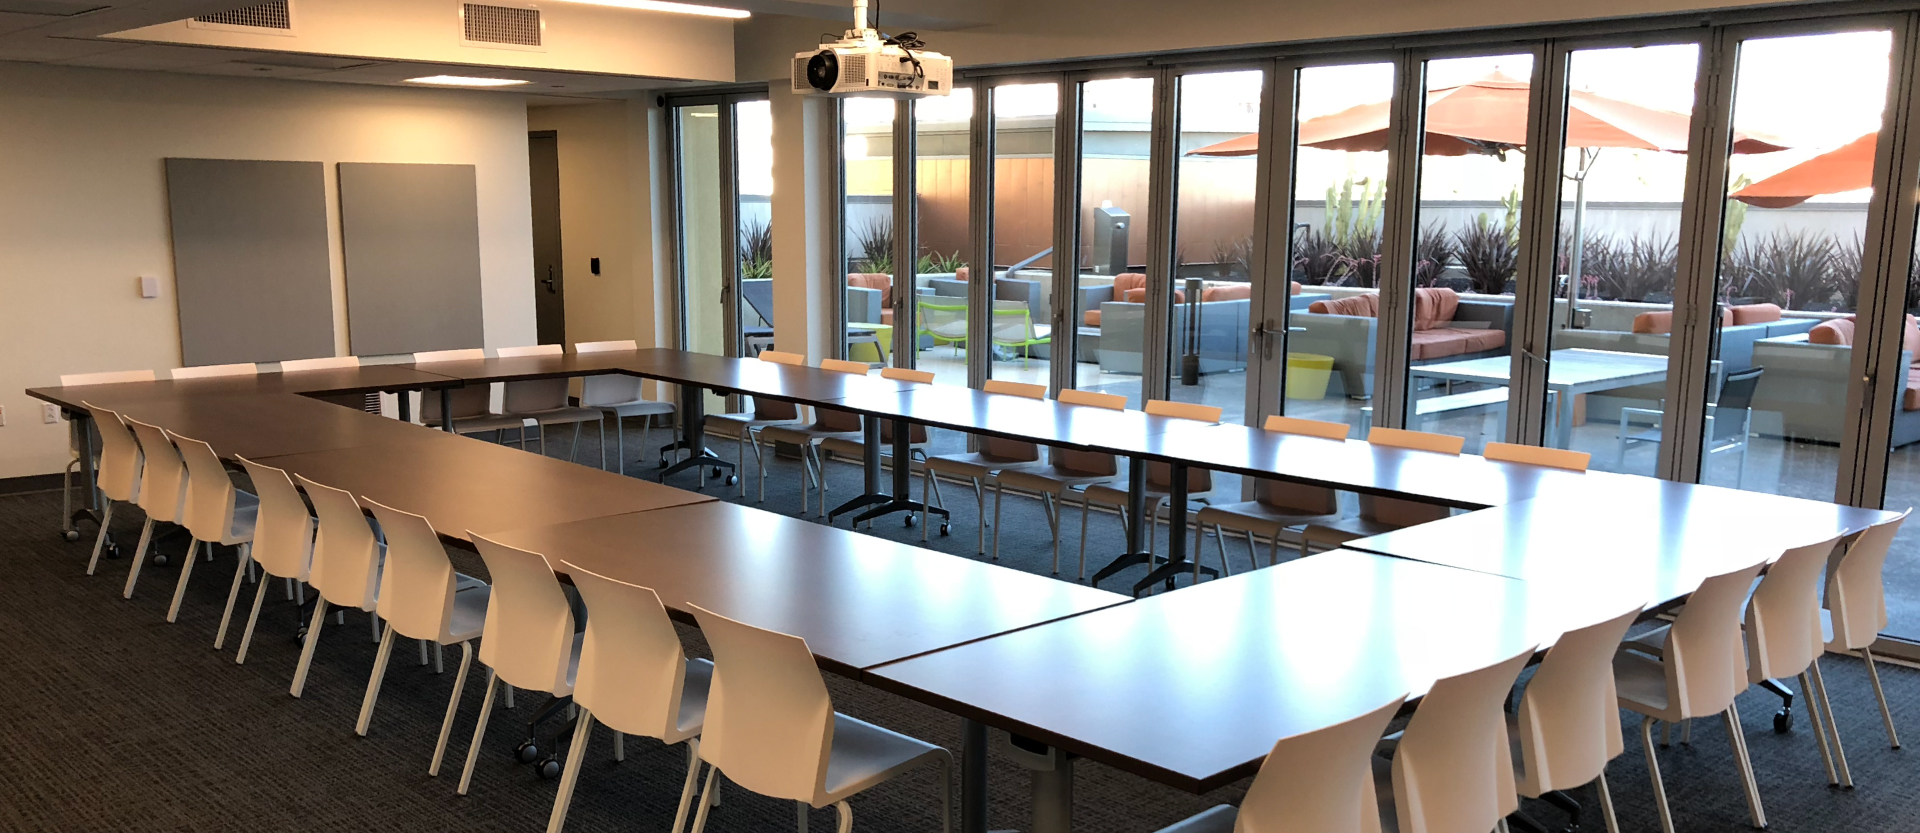 South Campus Plaza - Conference Room